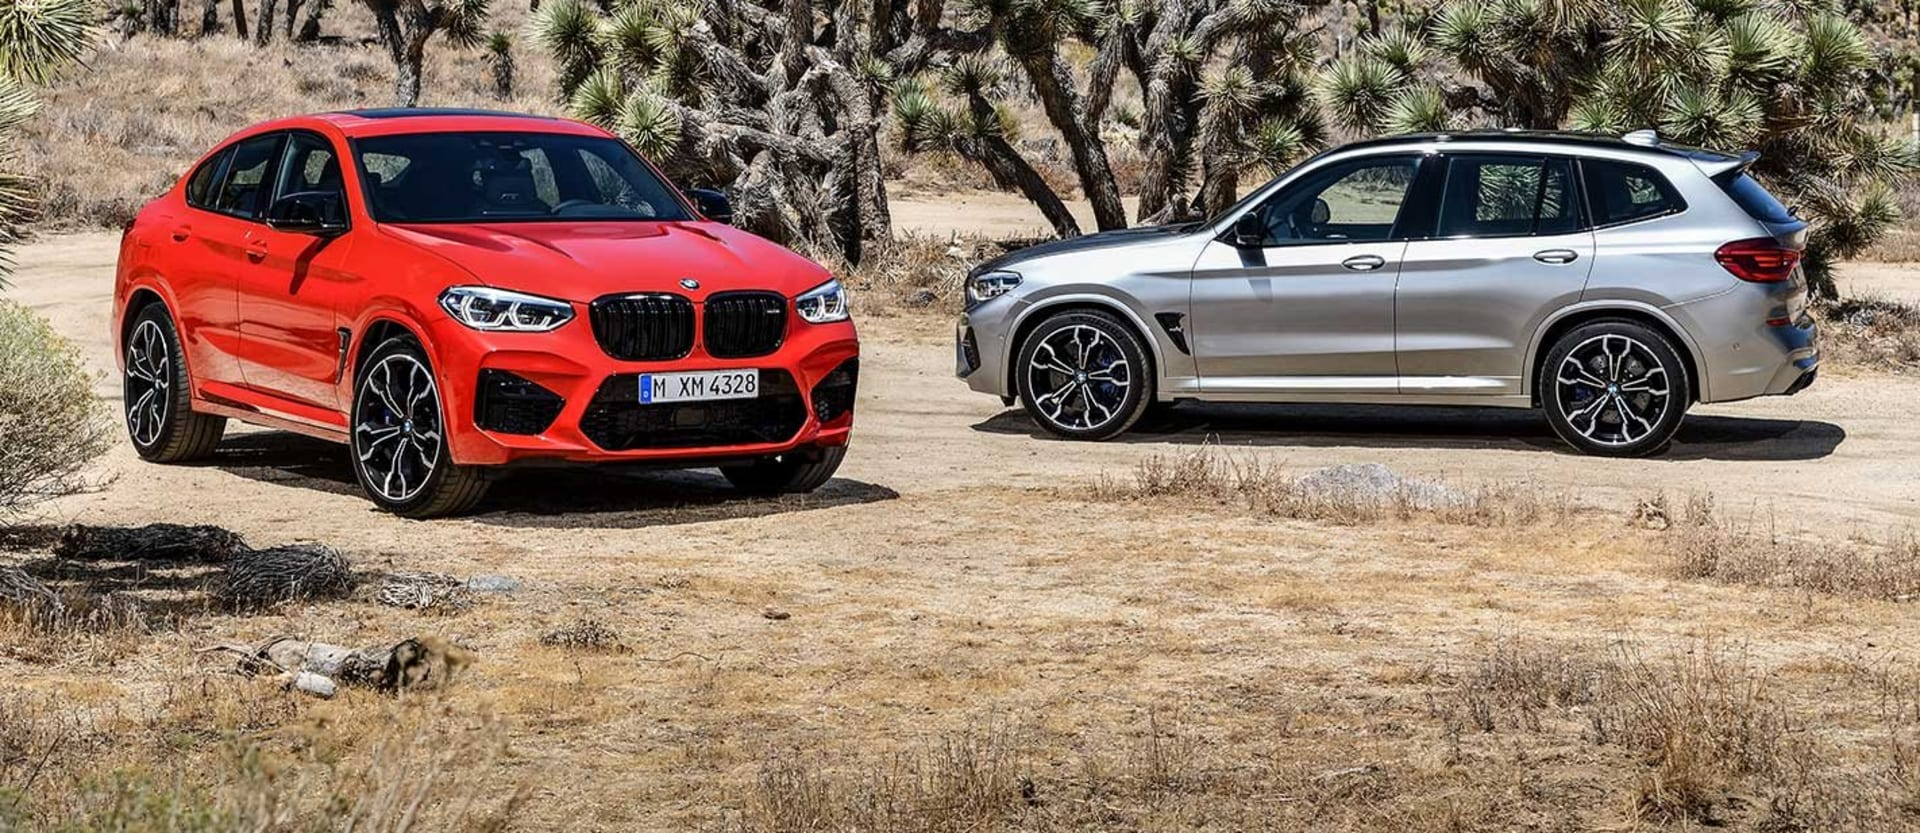 2019 BMW X3M and X4M Competition Australian pricing